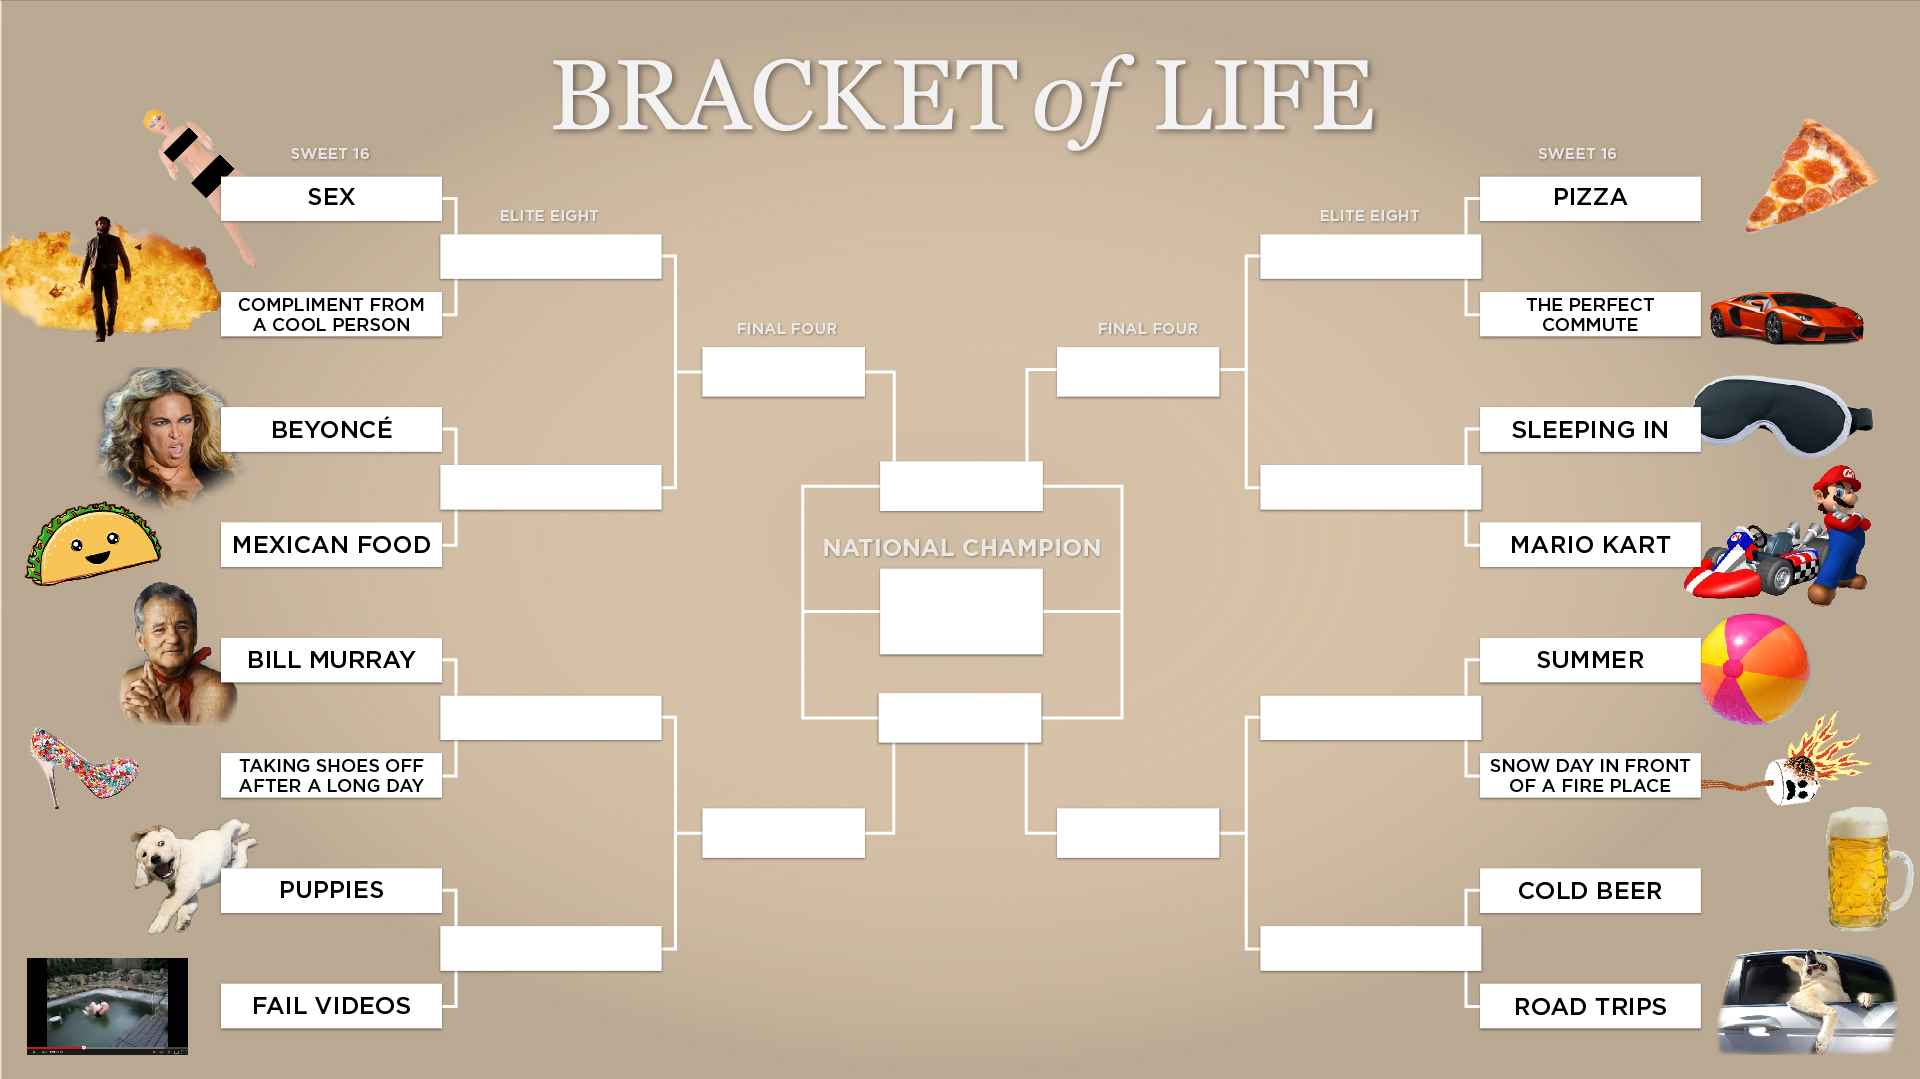 Lifebracket_v2-01_medium